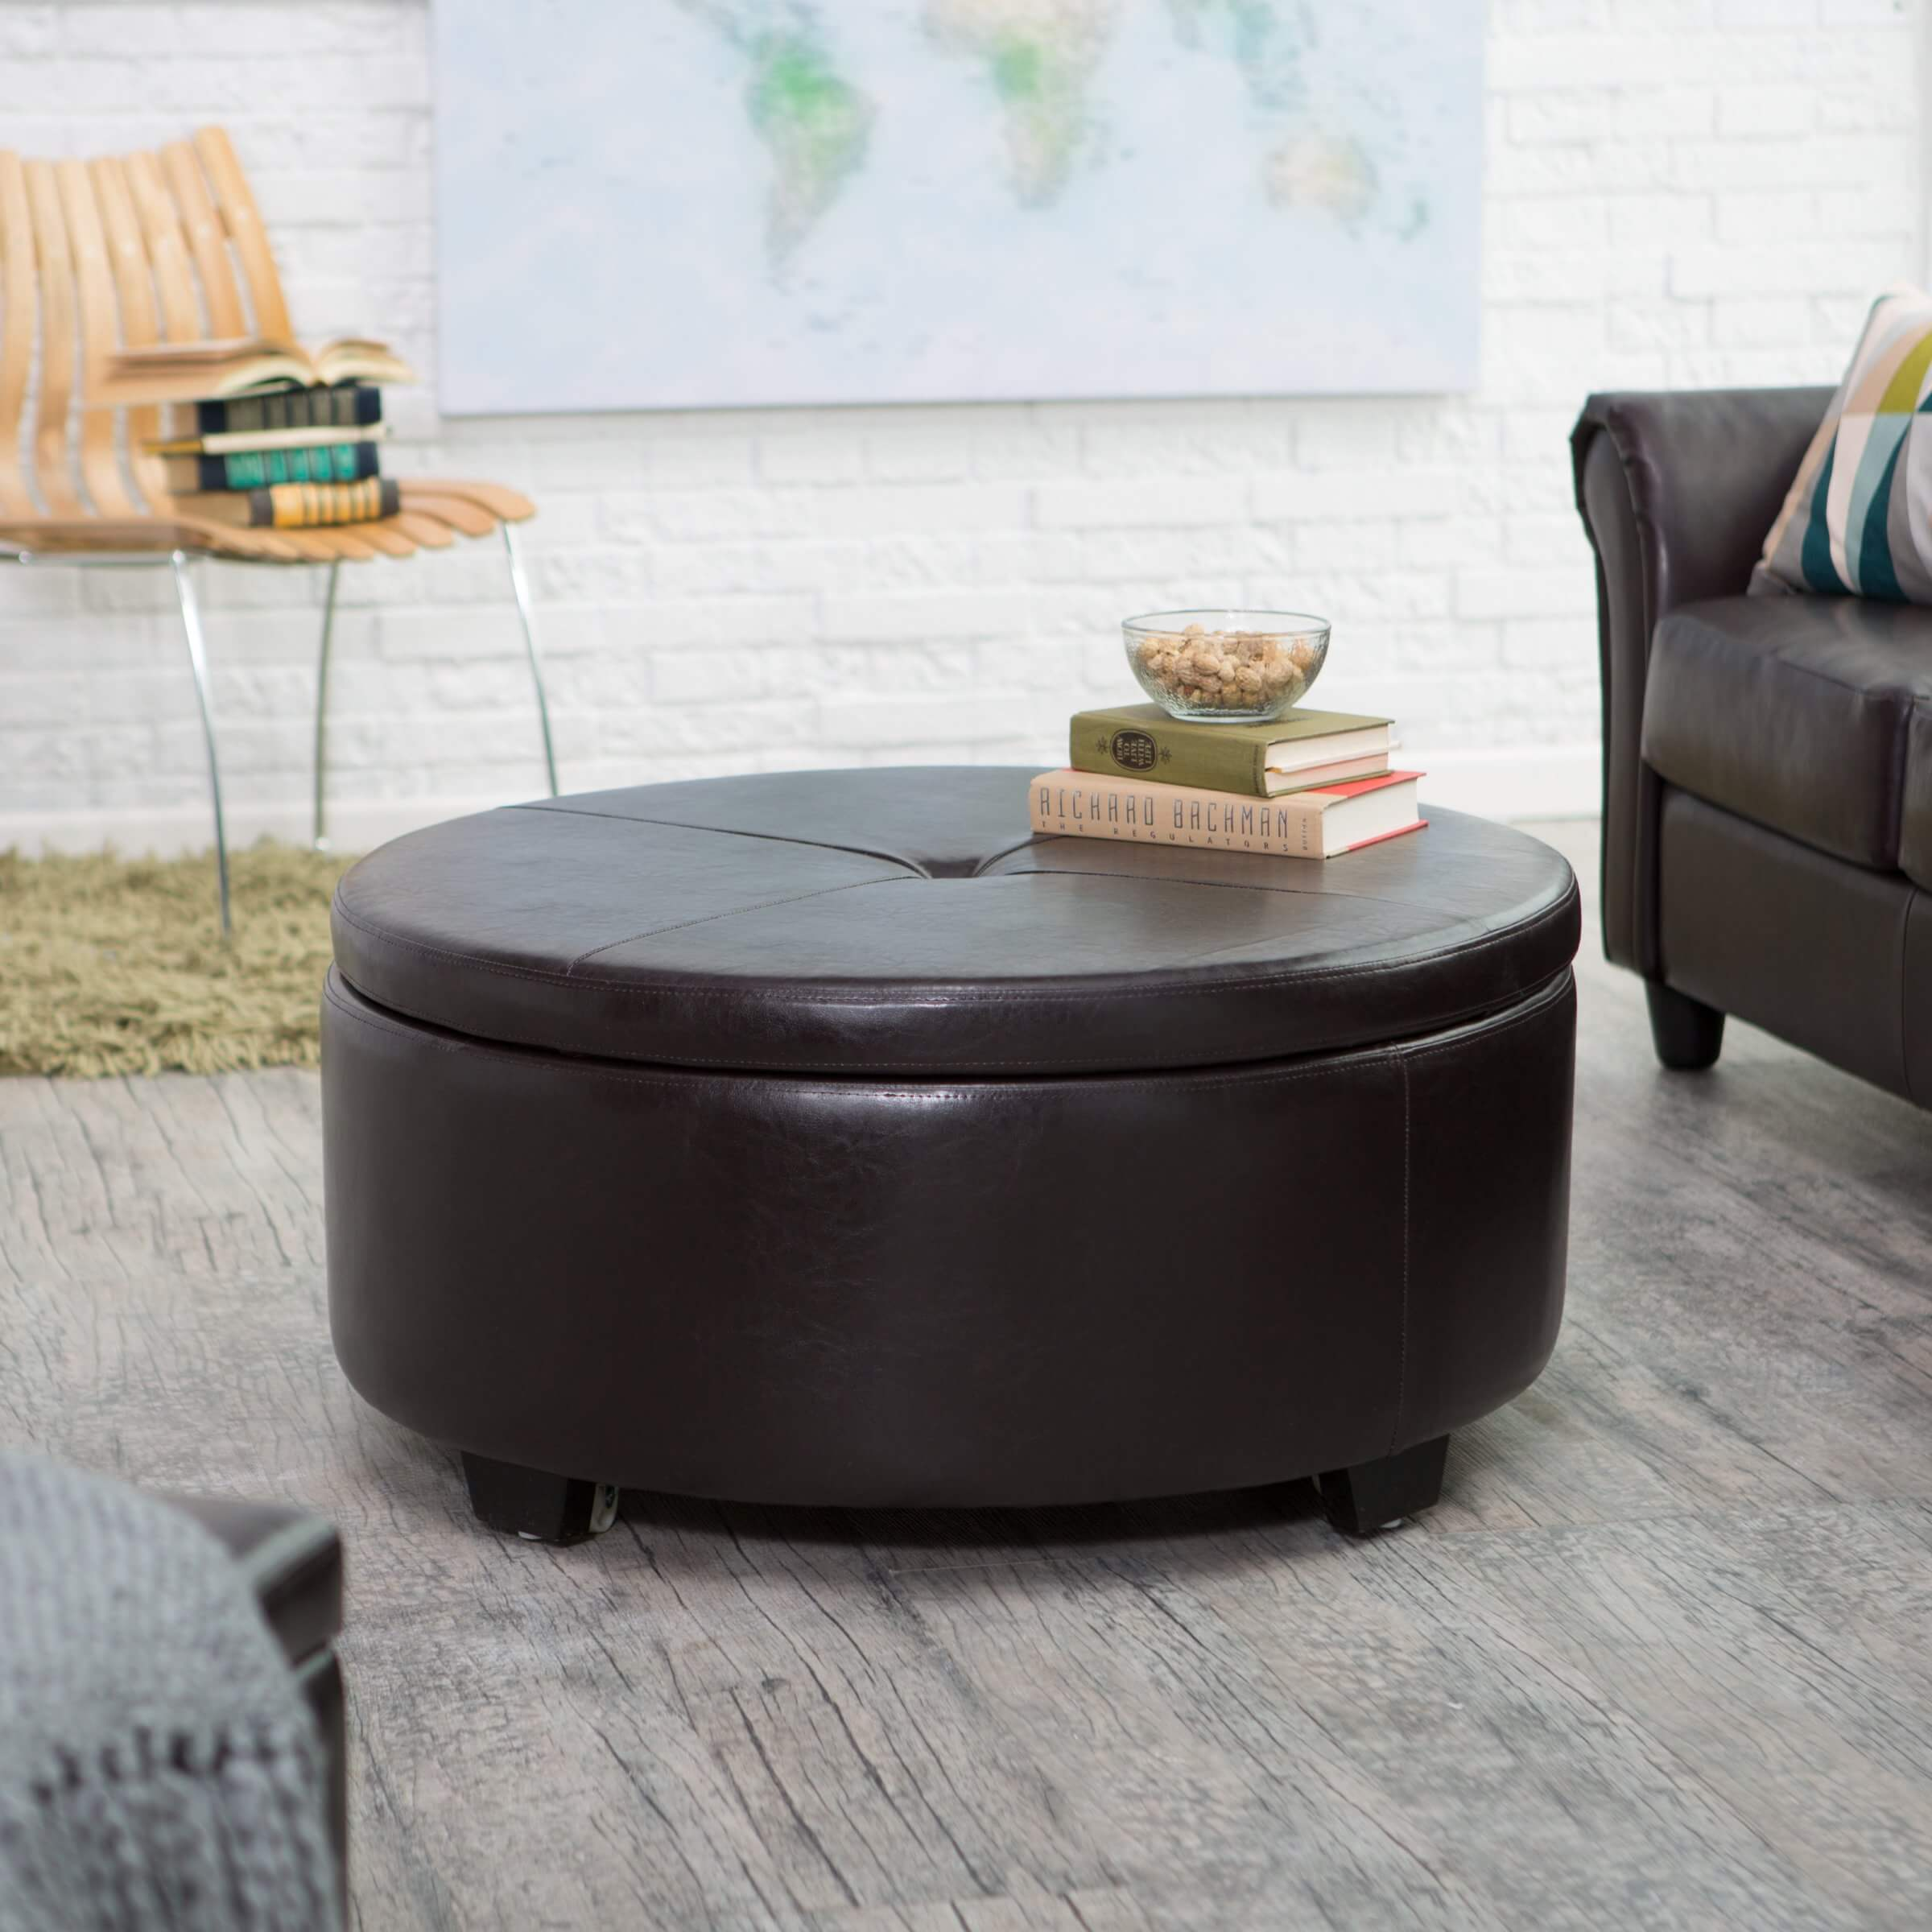 Large circular bonded leather and wood ottoman has flip-top button tufted lid featuring full coffee table surface on opposite side, concealing large interior storage space.